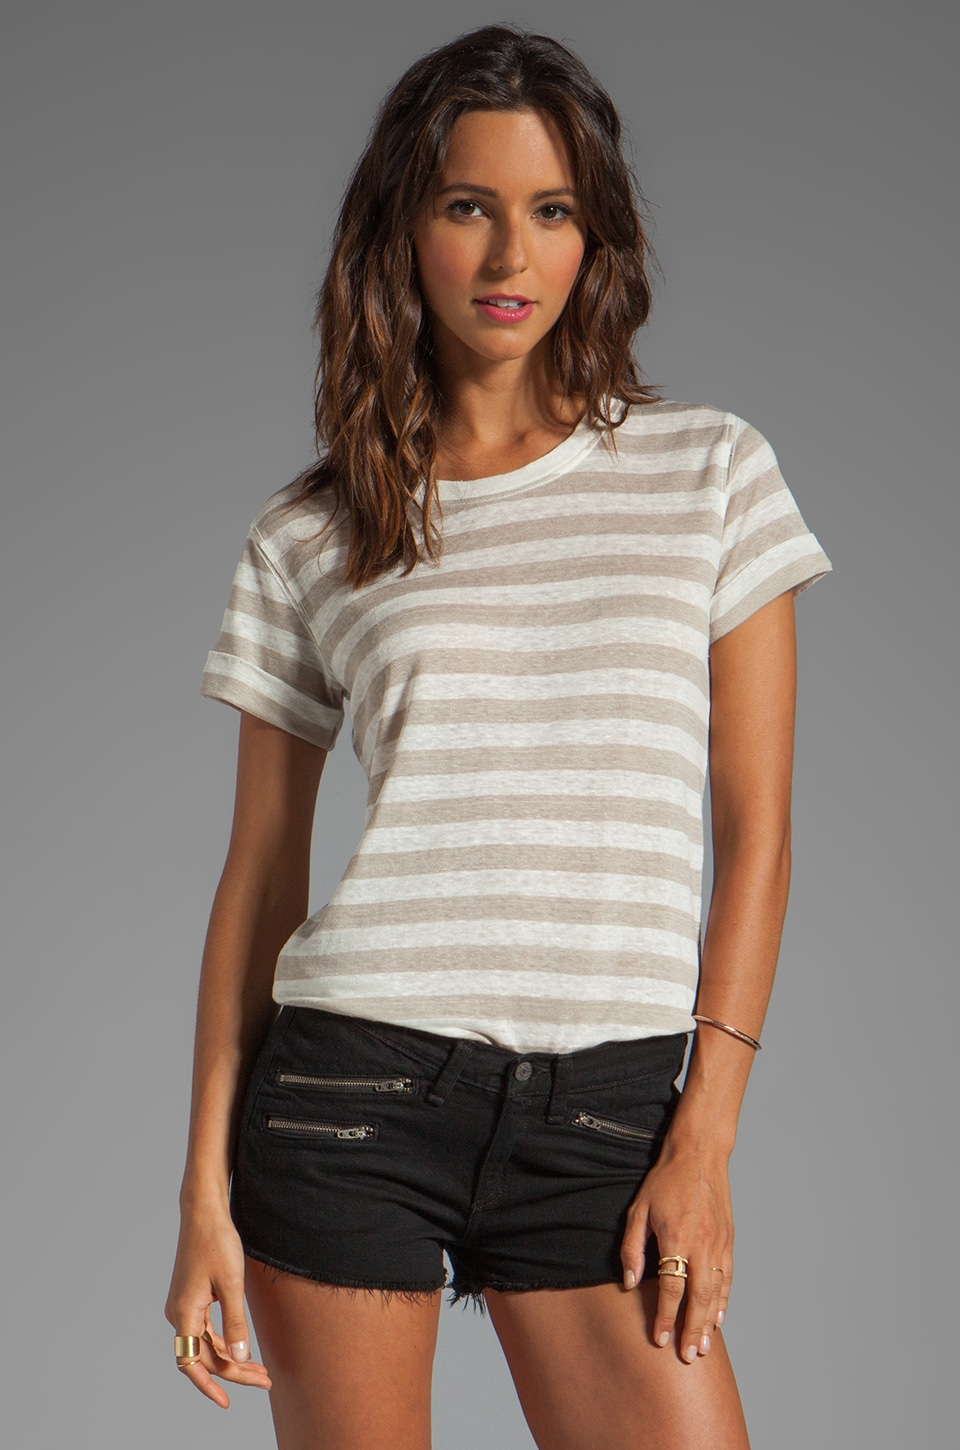 Theory Lisso Tee in Light Stone/Ivory